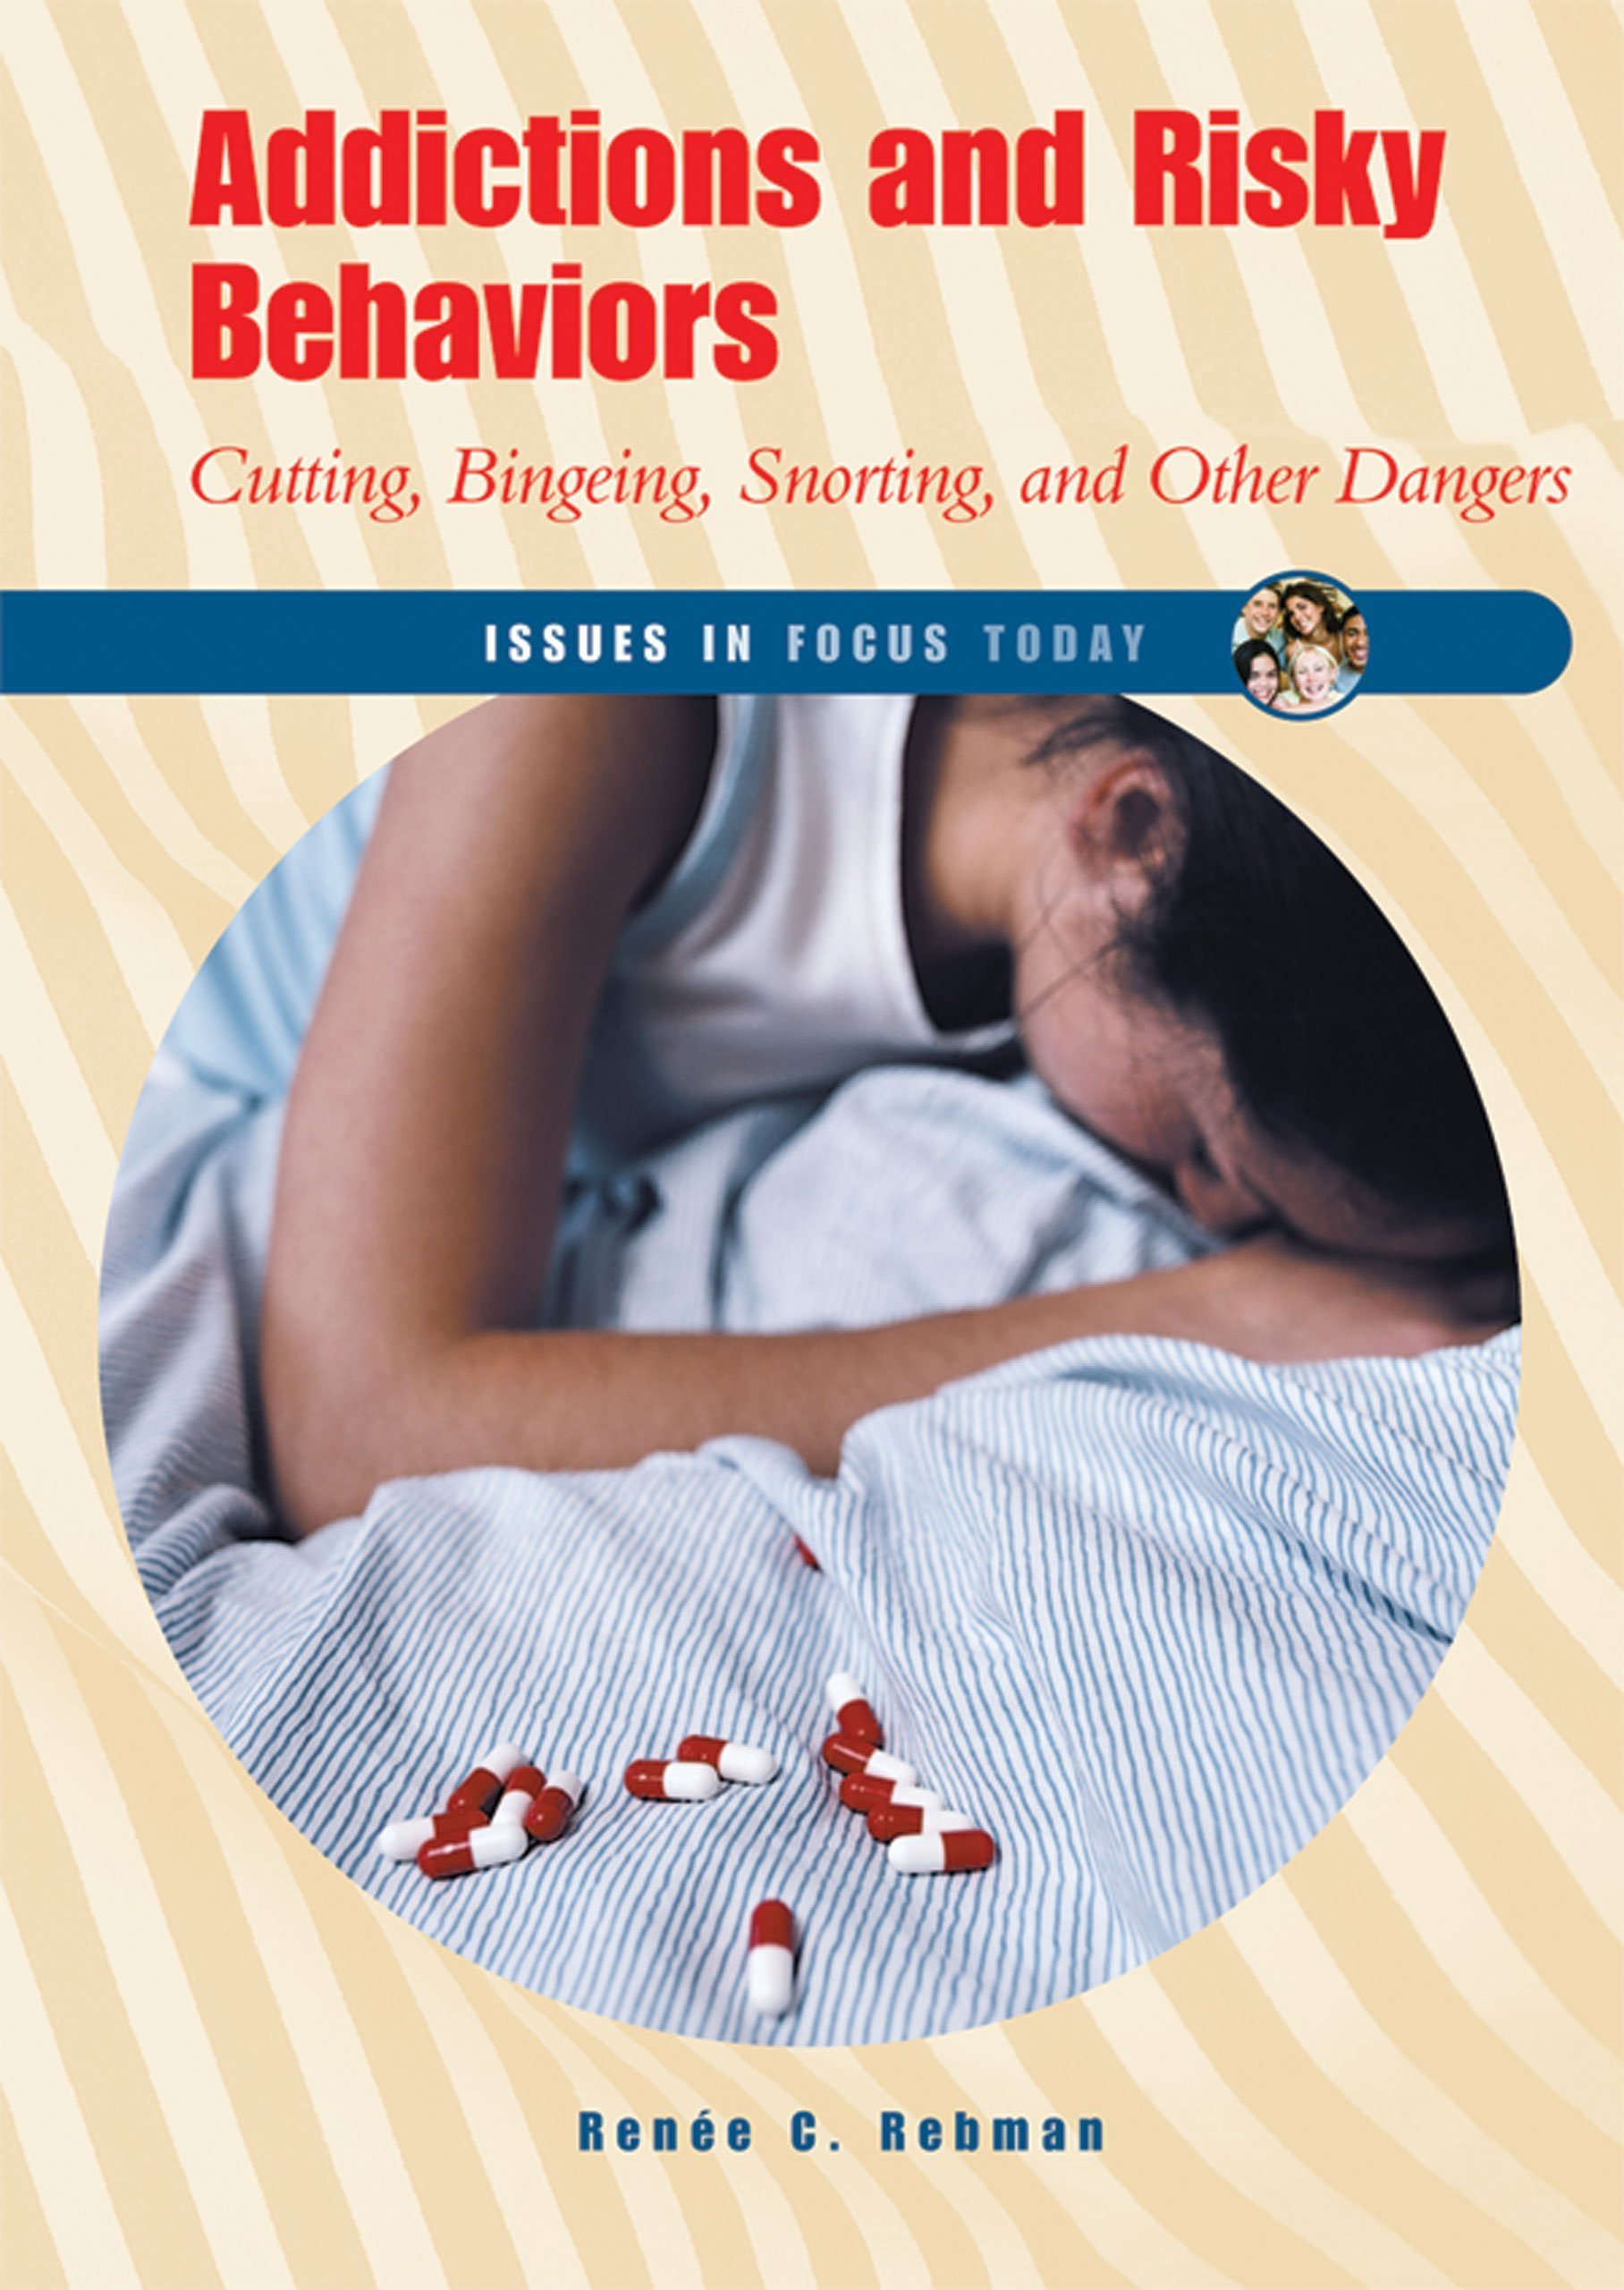 Download Addictions And Risky Behaviors: Cutting, Bingeing, Snorting, And Other Dangers (Issues in Focus Today) pdf